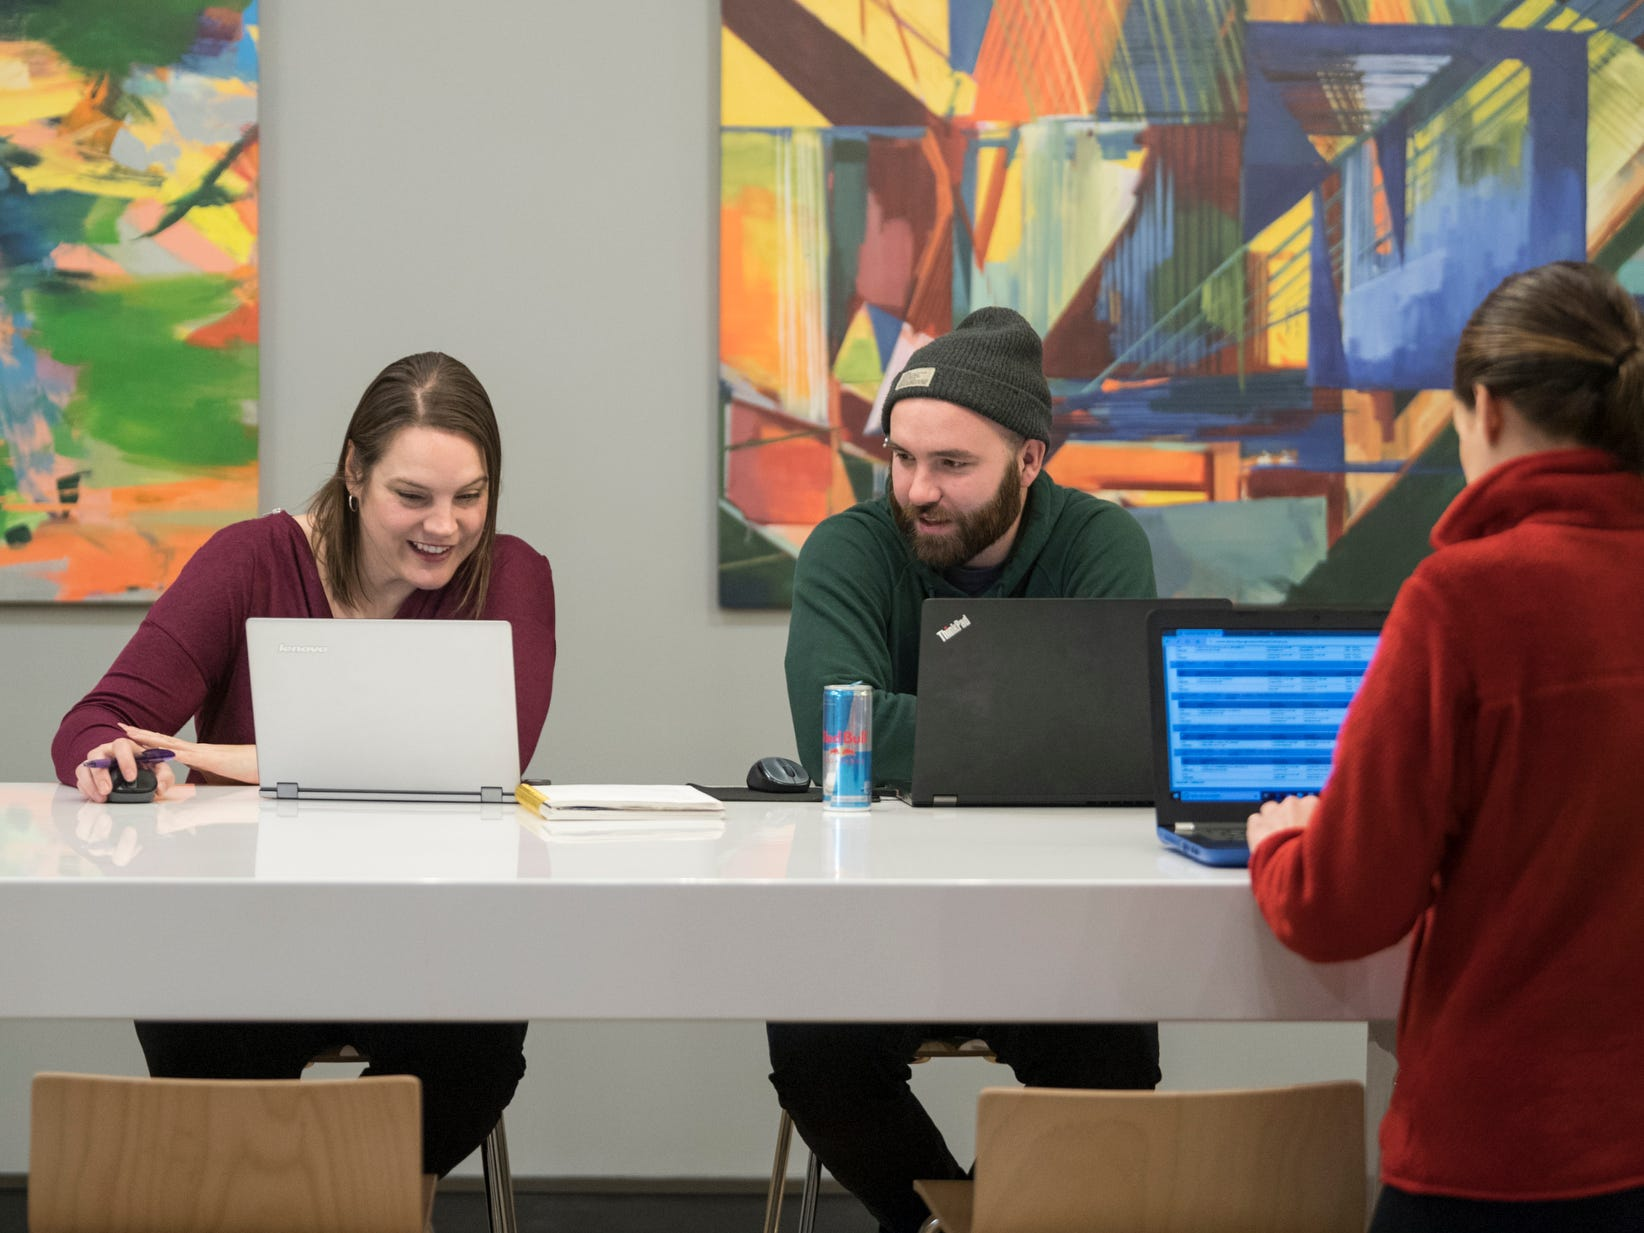 Leslie Wade, from left, and John Pena, both employed by a consulting company called ThoughtFire, chat about a project as Alisa Shelton works remotely for a moving and logistics services company called Alexander's Mobility Service inside the new Cowork Evansville space in downtown Evansville, Ind., Tuesday, Dec. 4, 2018.